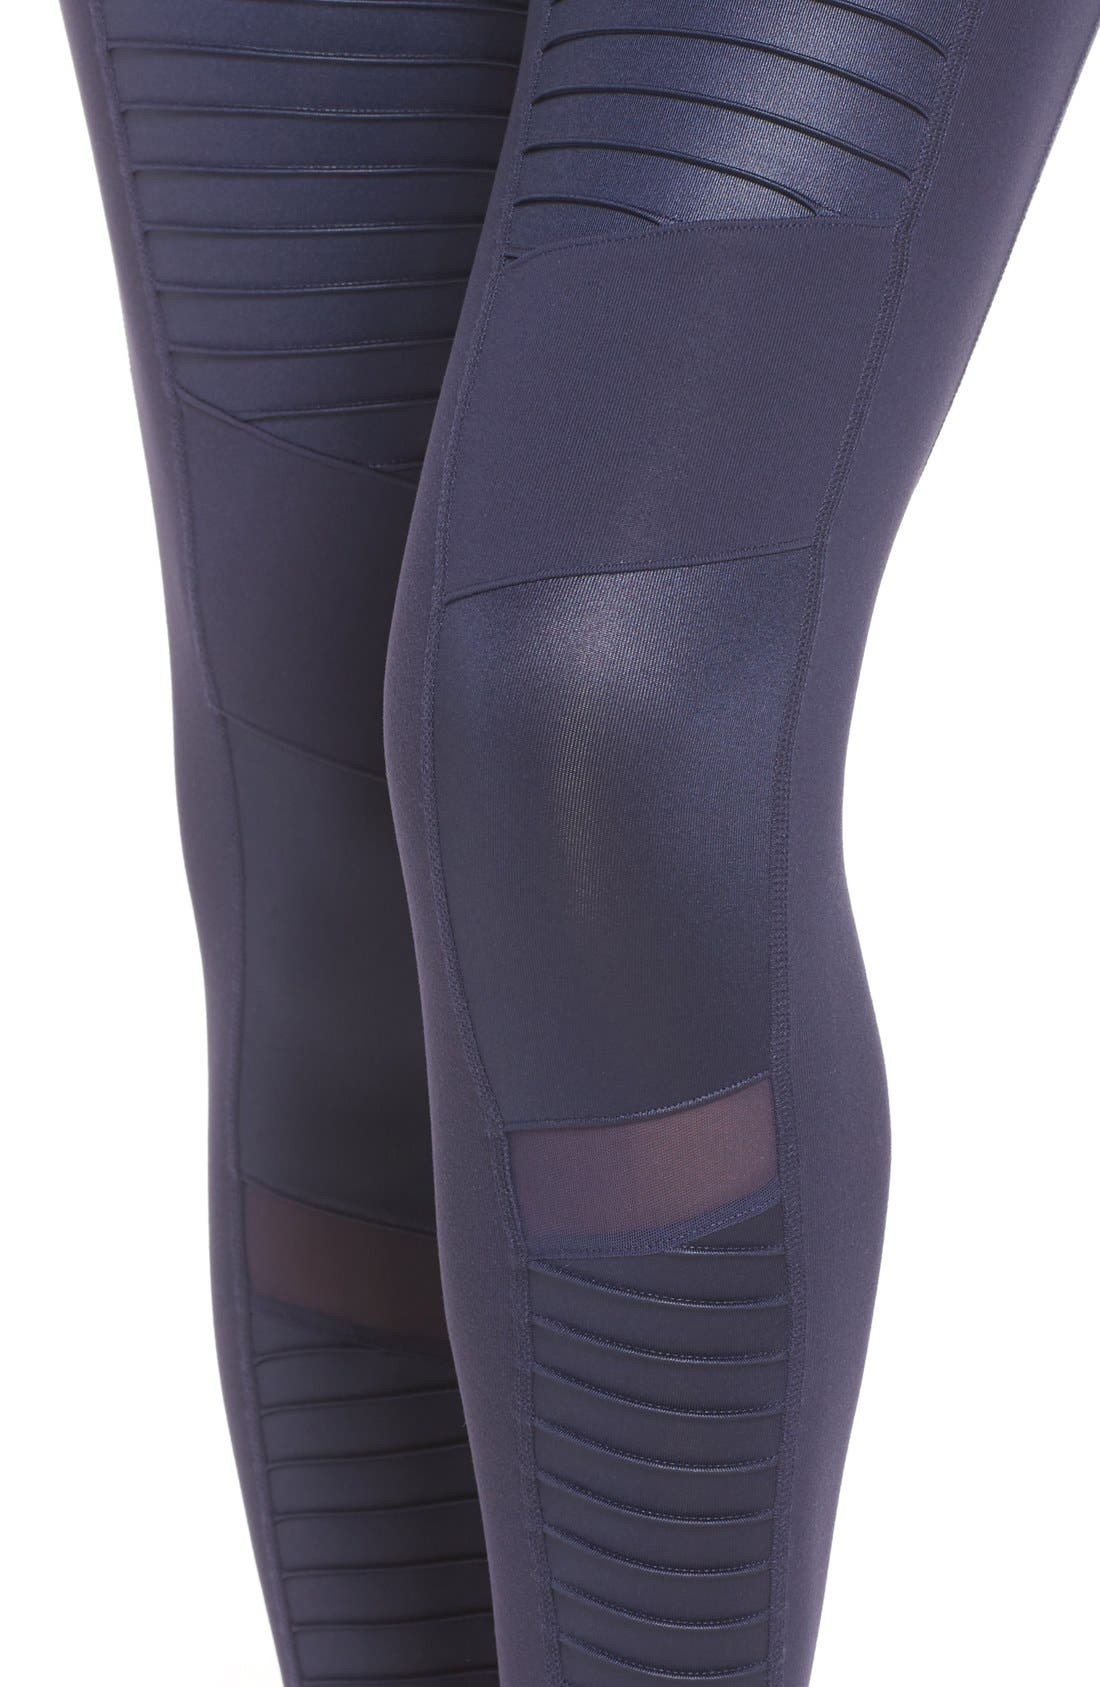 High Waist Moto Leggings,                             Alternate thumbnail 4, color,                             Rich Navy/ Rich Navy Glossy